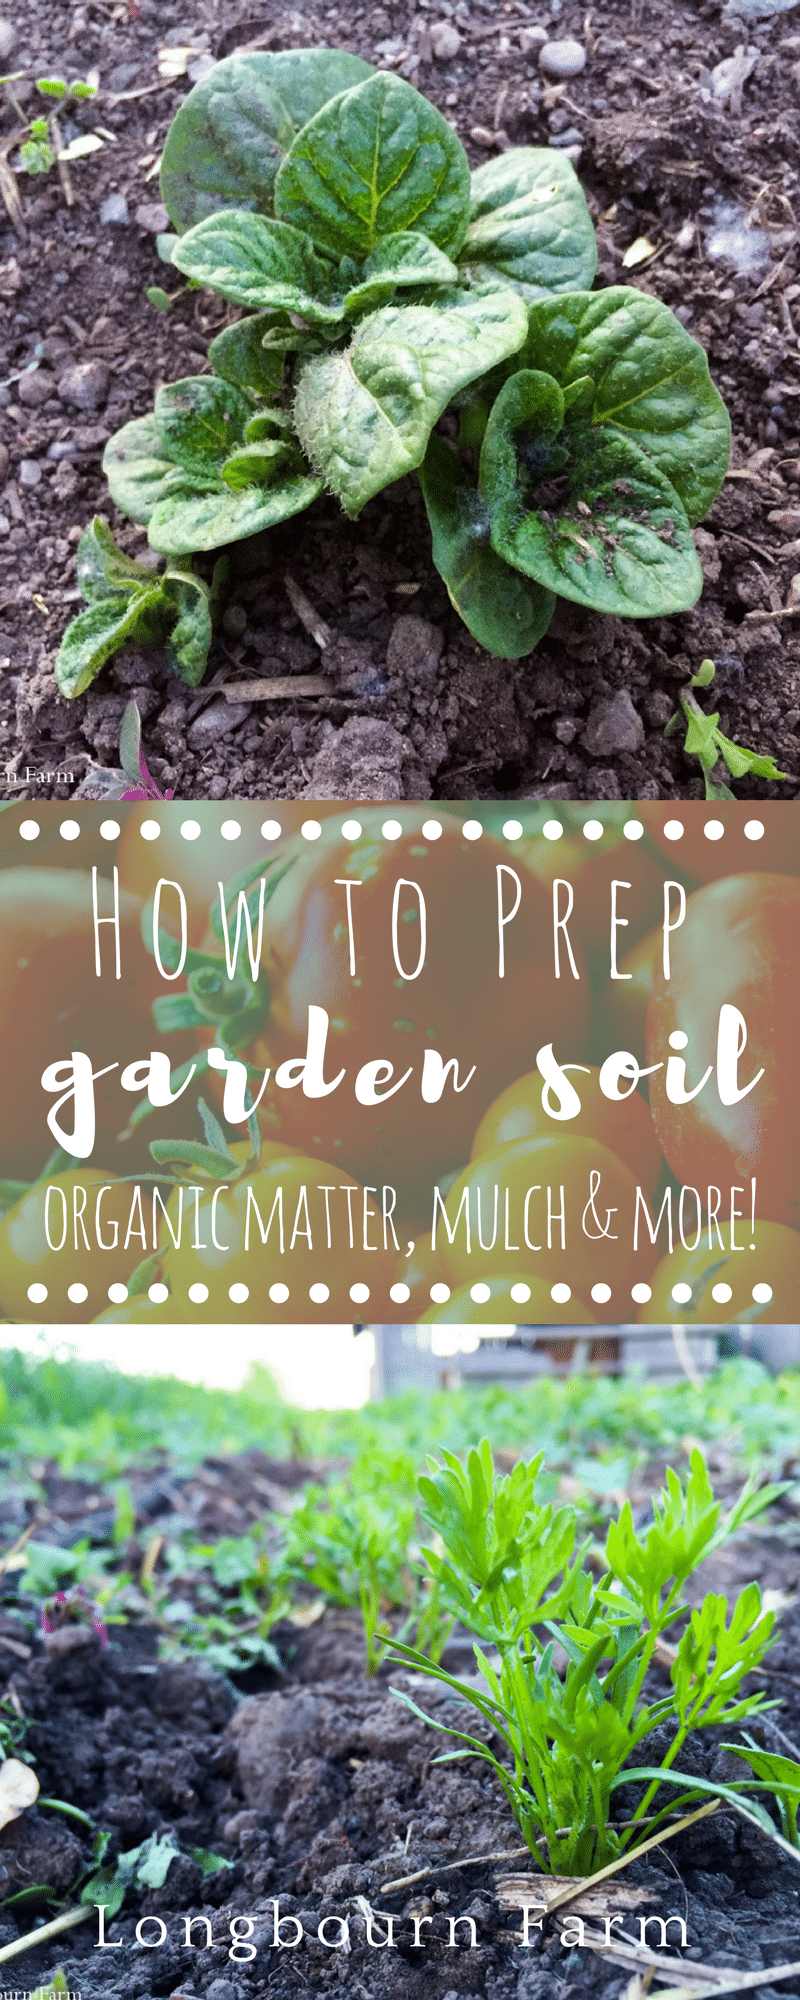 Learn how to prep your garden soil perfectly! This post covers drainage and compaction as well as rates and reasoning for adding organic matter and mulch! via @longbournfarm